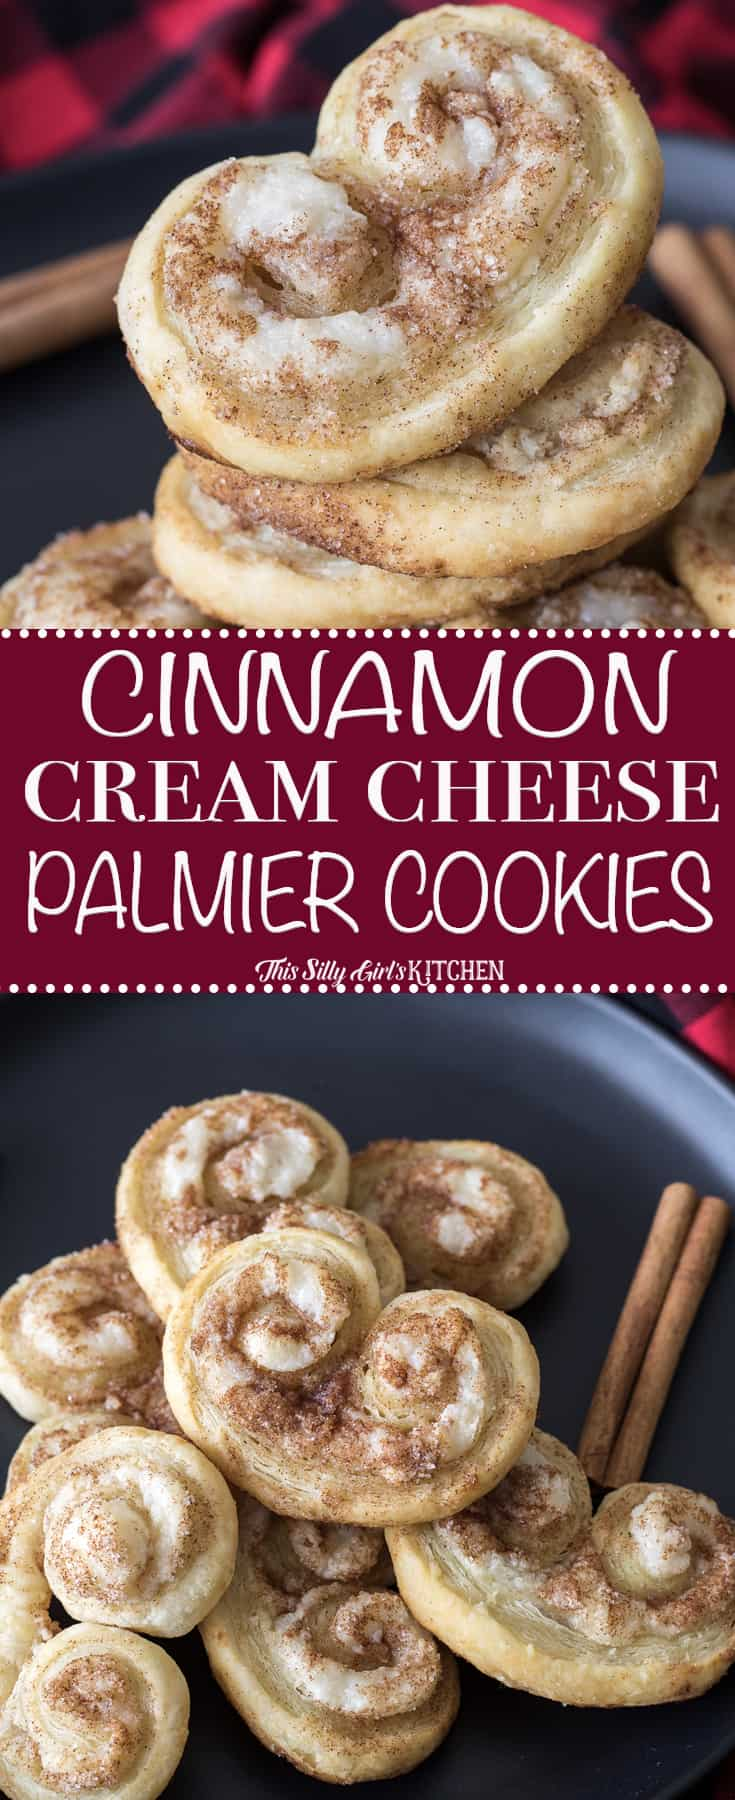 Cinnamon Cream Cheese Palmier Cookies, puff pastry, sweetened cream cheese, and cinnamon sugar baked to golden brown deliciousness! #Recipe from ThisSillyGirlsKitchen.com #christmascookies #cinnamon #creamcheese #palmier #cookies